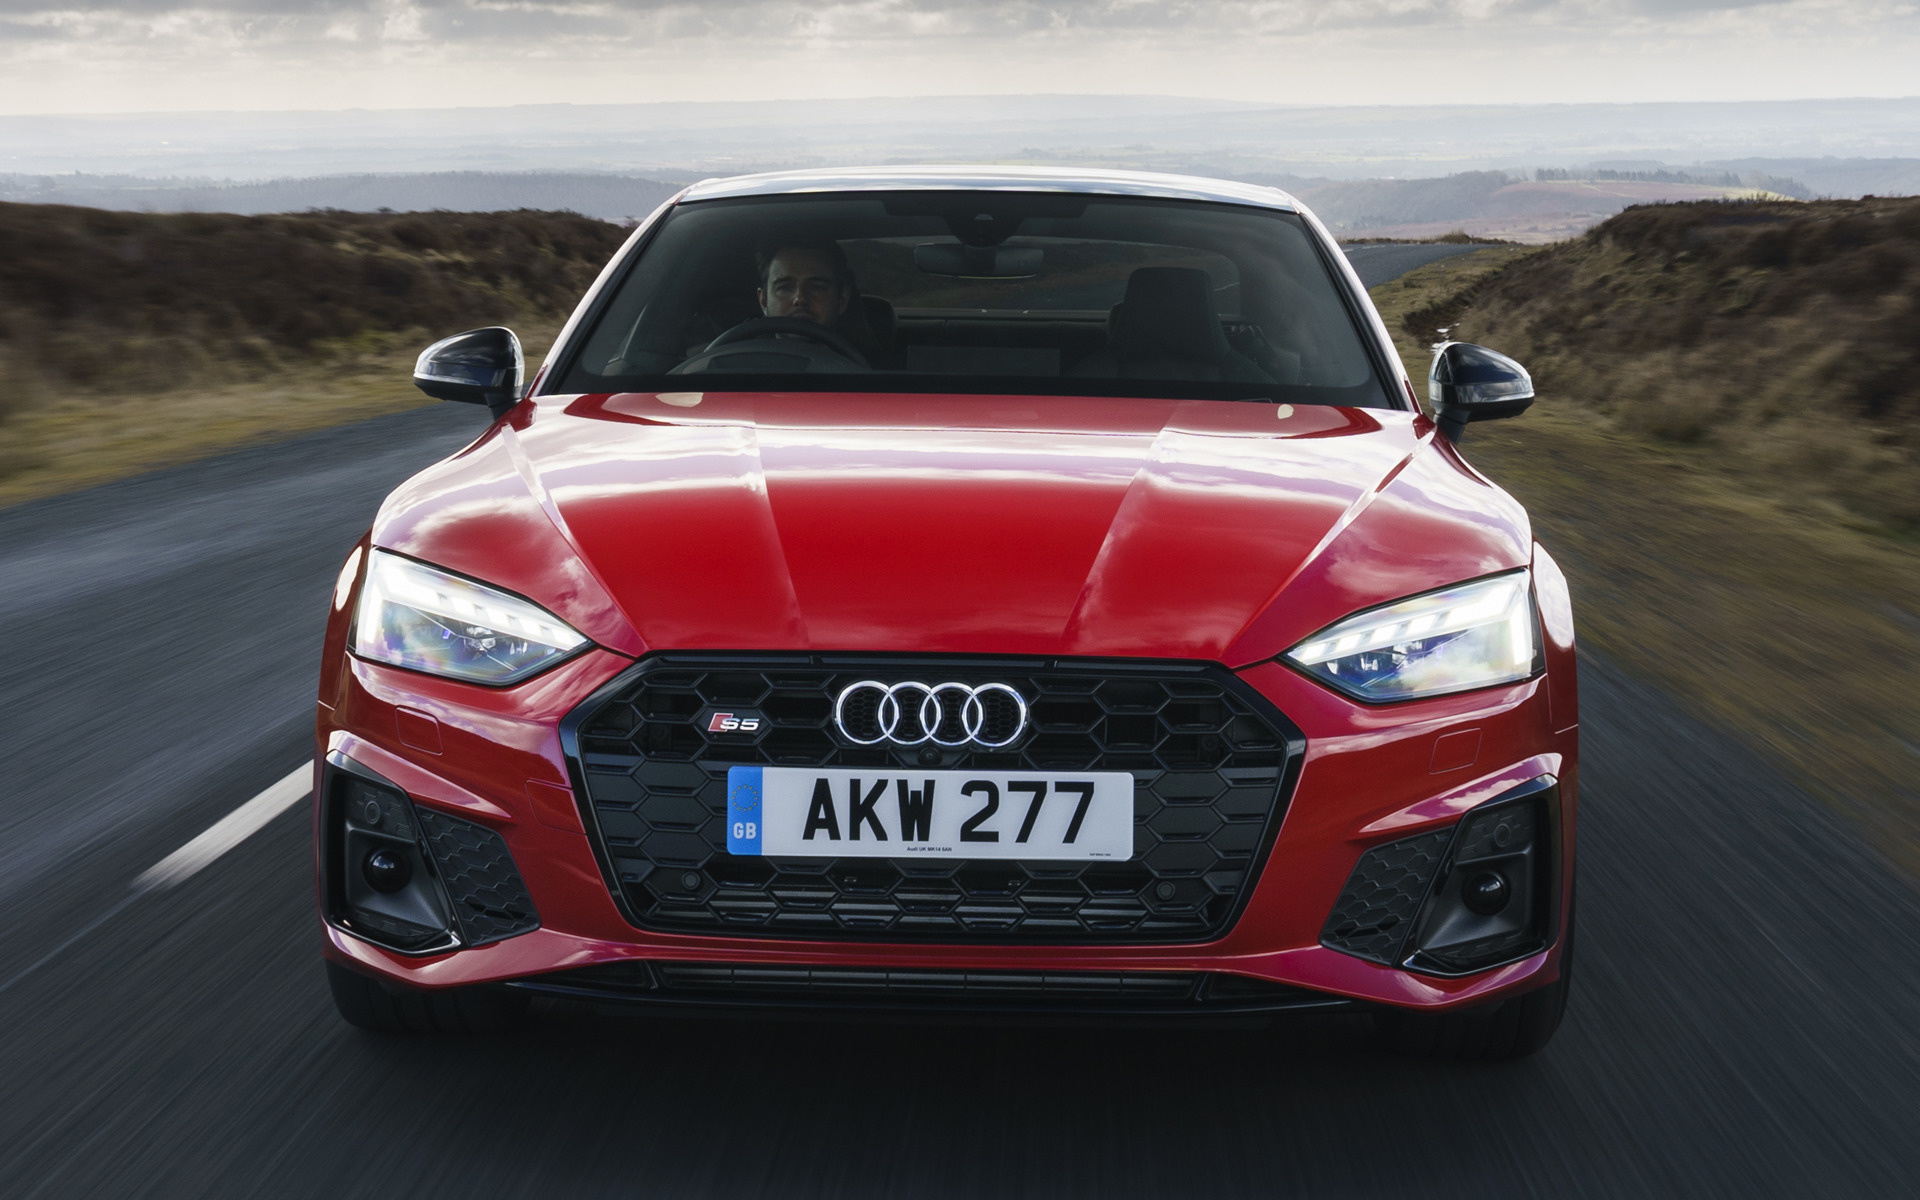 2020 Audi S5 Coupe (UK) - Wallpapers and HD Images | Car Pixel